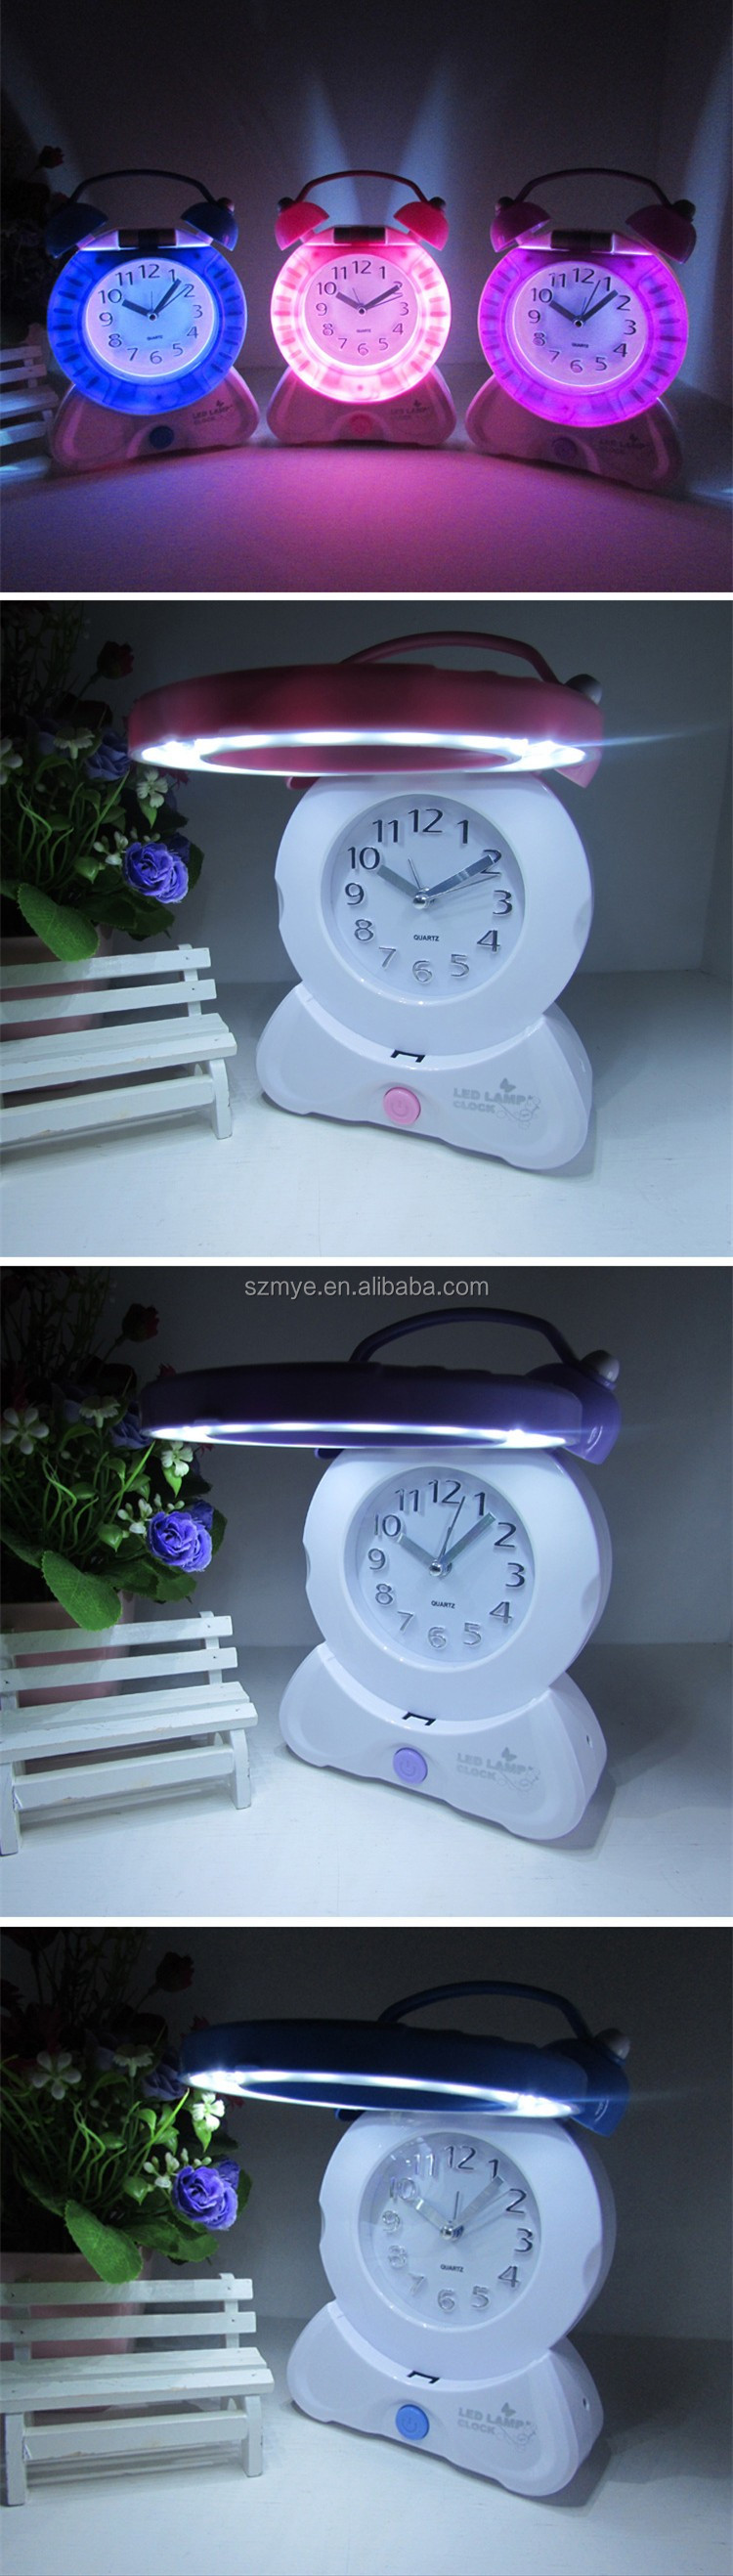 Led snooze morning call alarm clock touch wall mounted led reading led snooze morning call alarm clock touch wall mounted led reading desk lamp light amipublicfo Image collections